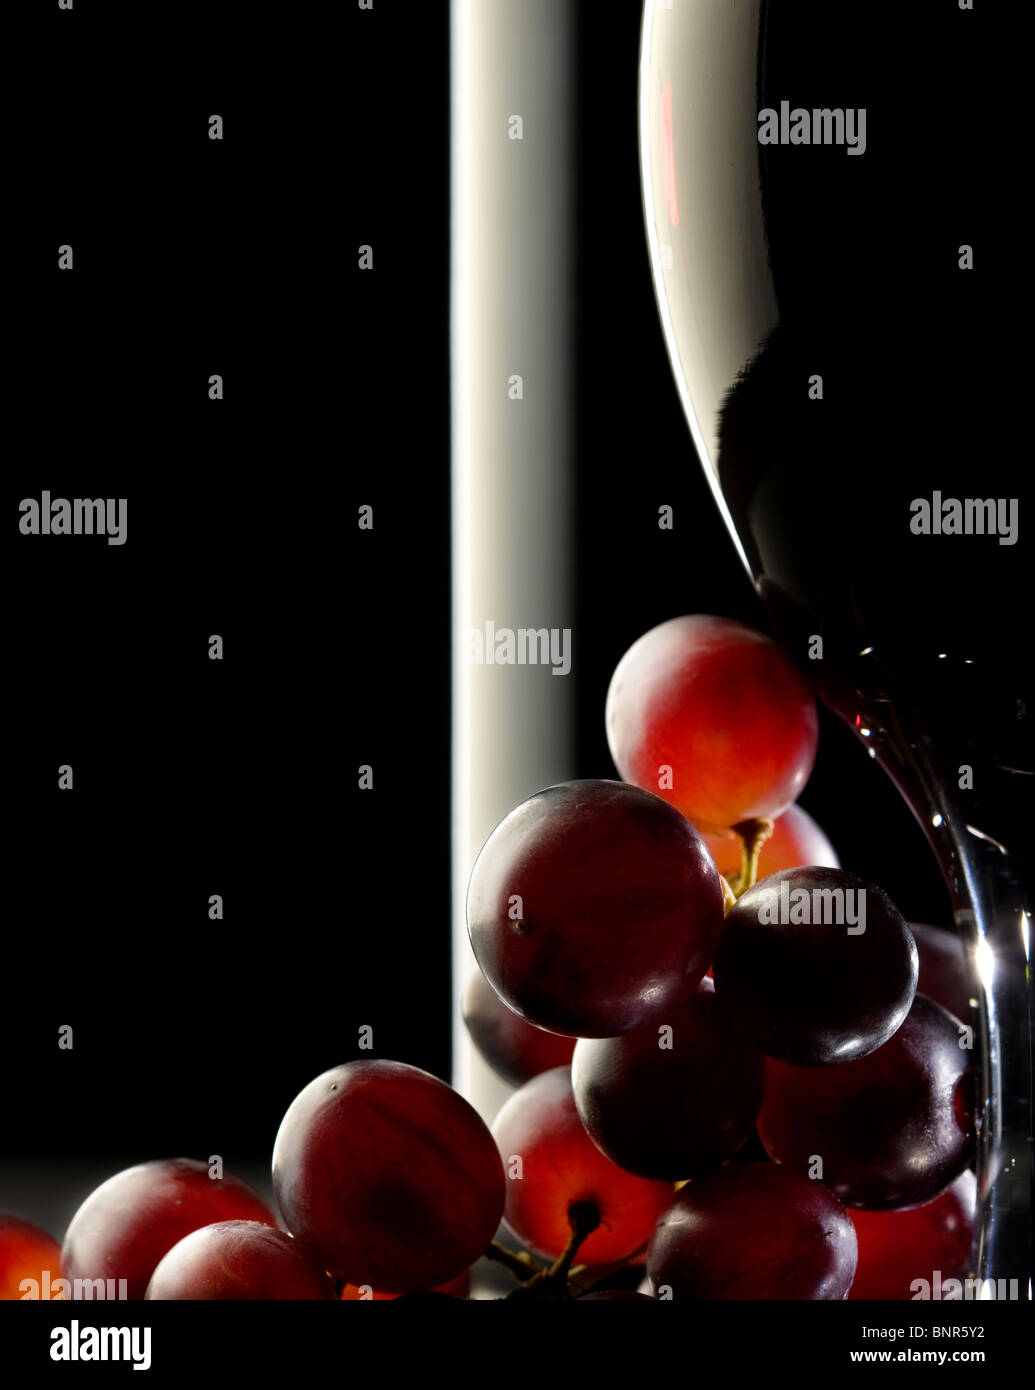 Close-up of red grapes and a glass / bottle of red wine - Stock Image